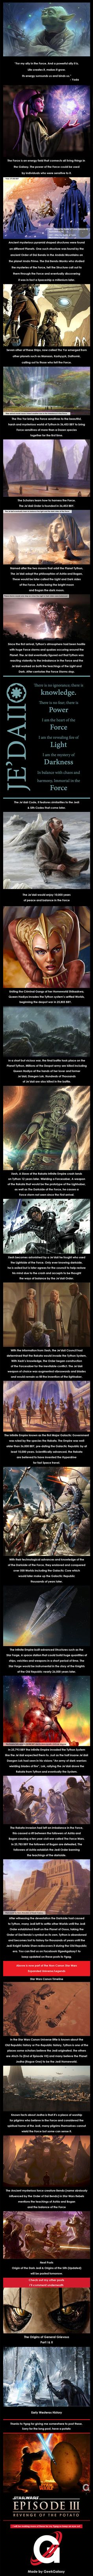 Origins of the Jedi (Star Wars History).